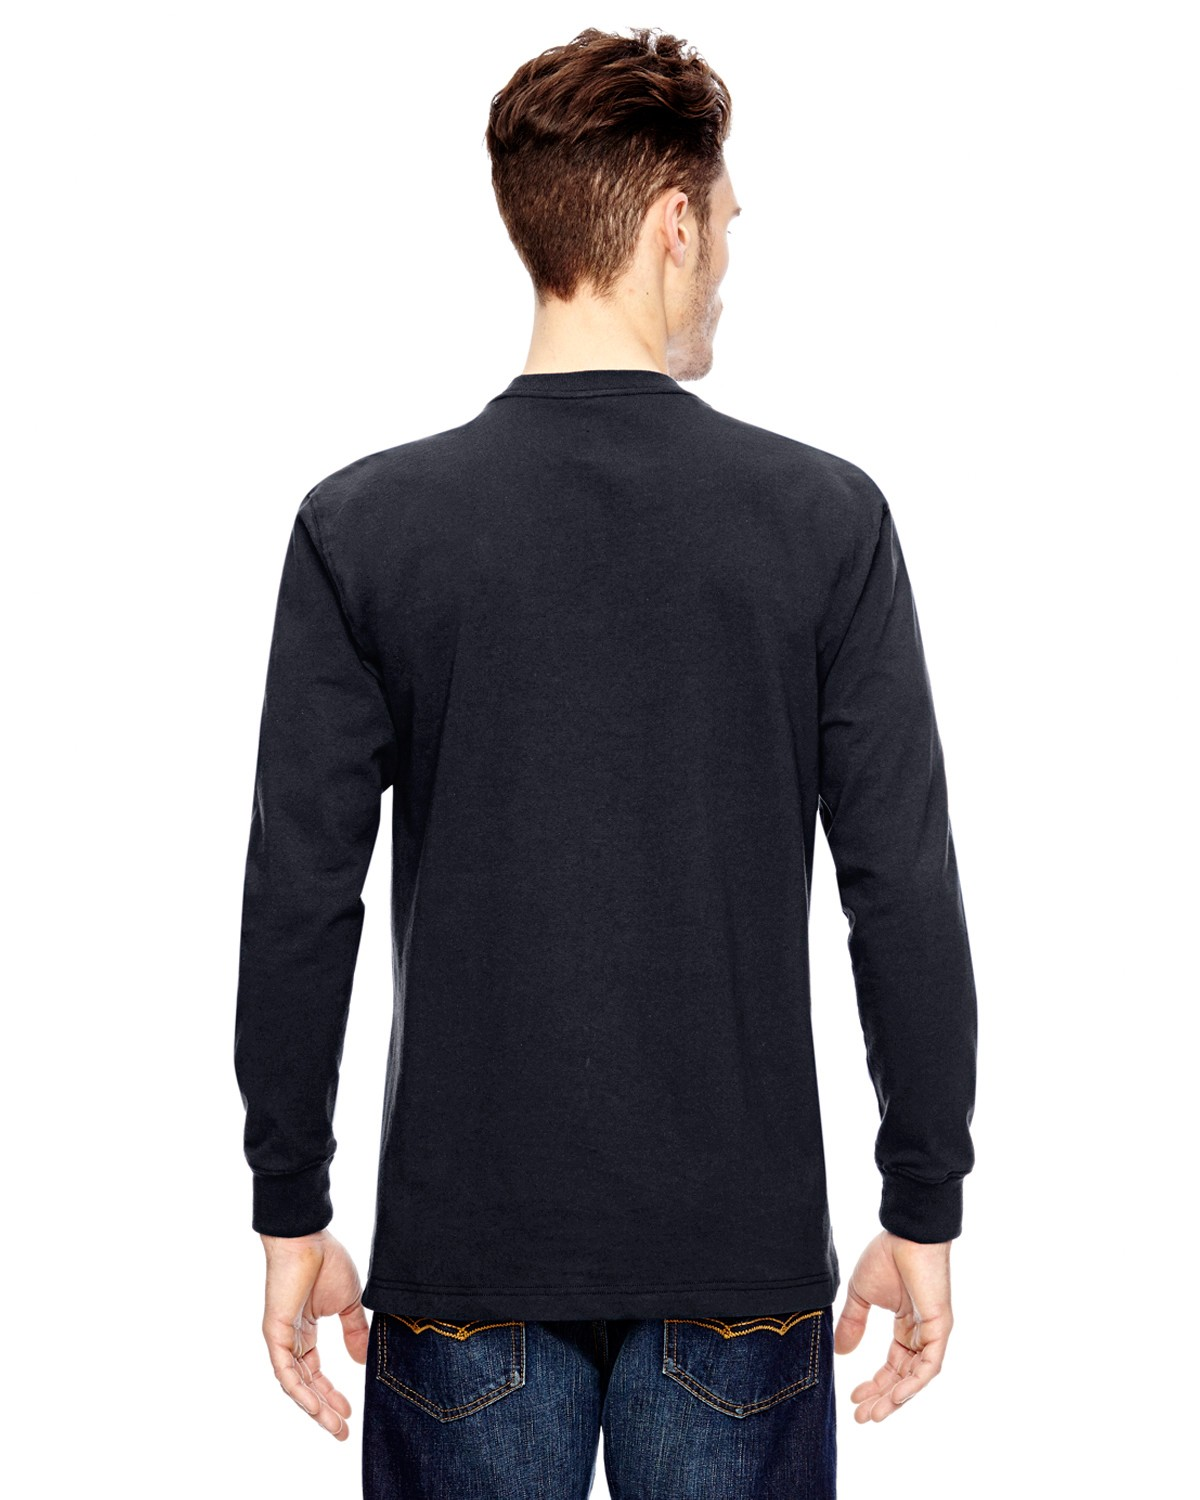 WL450 Dickies DARK NAVY